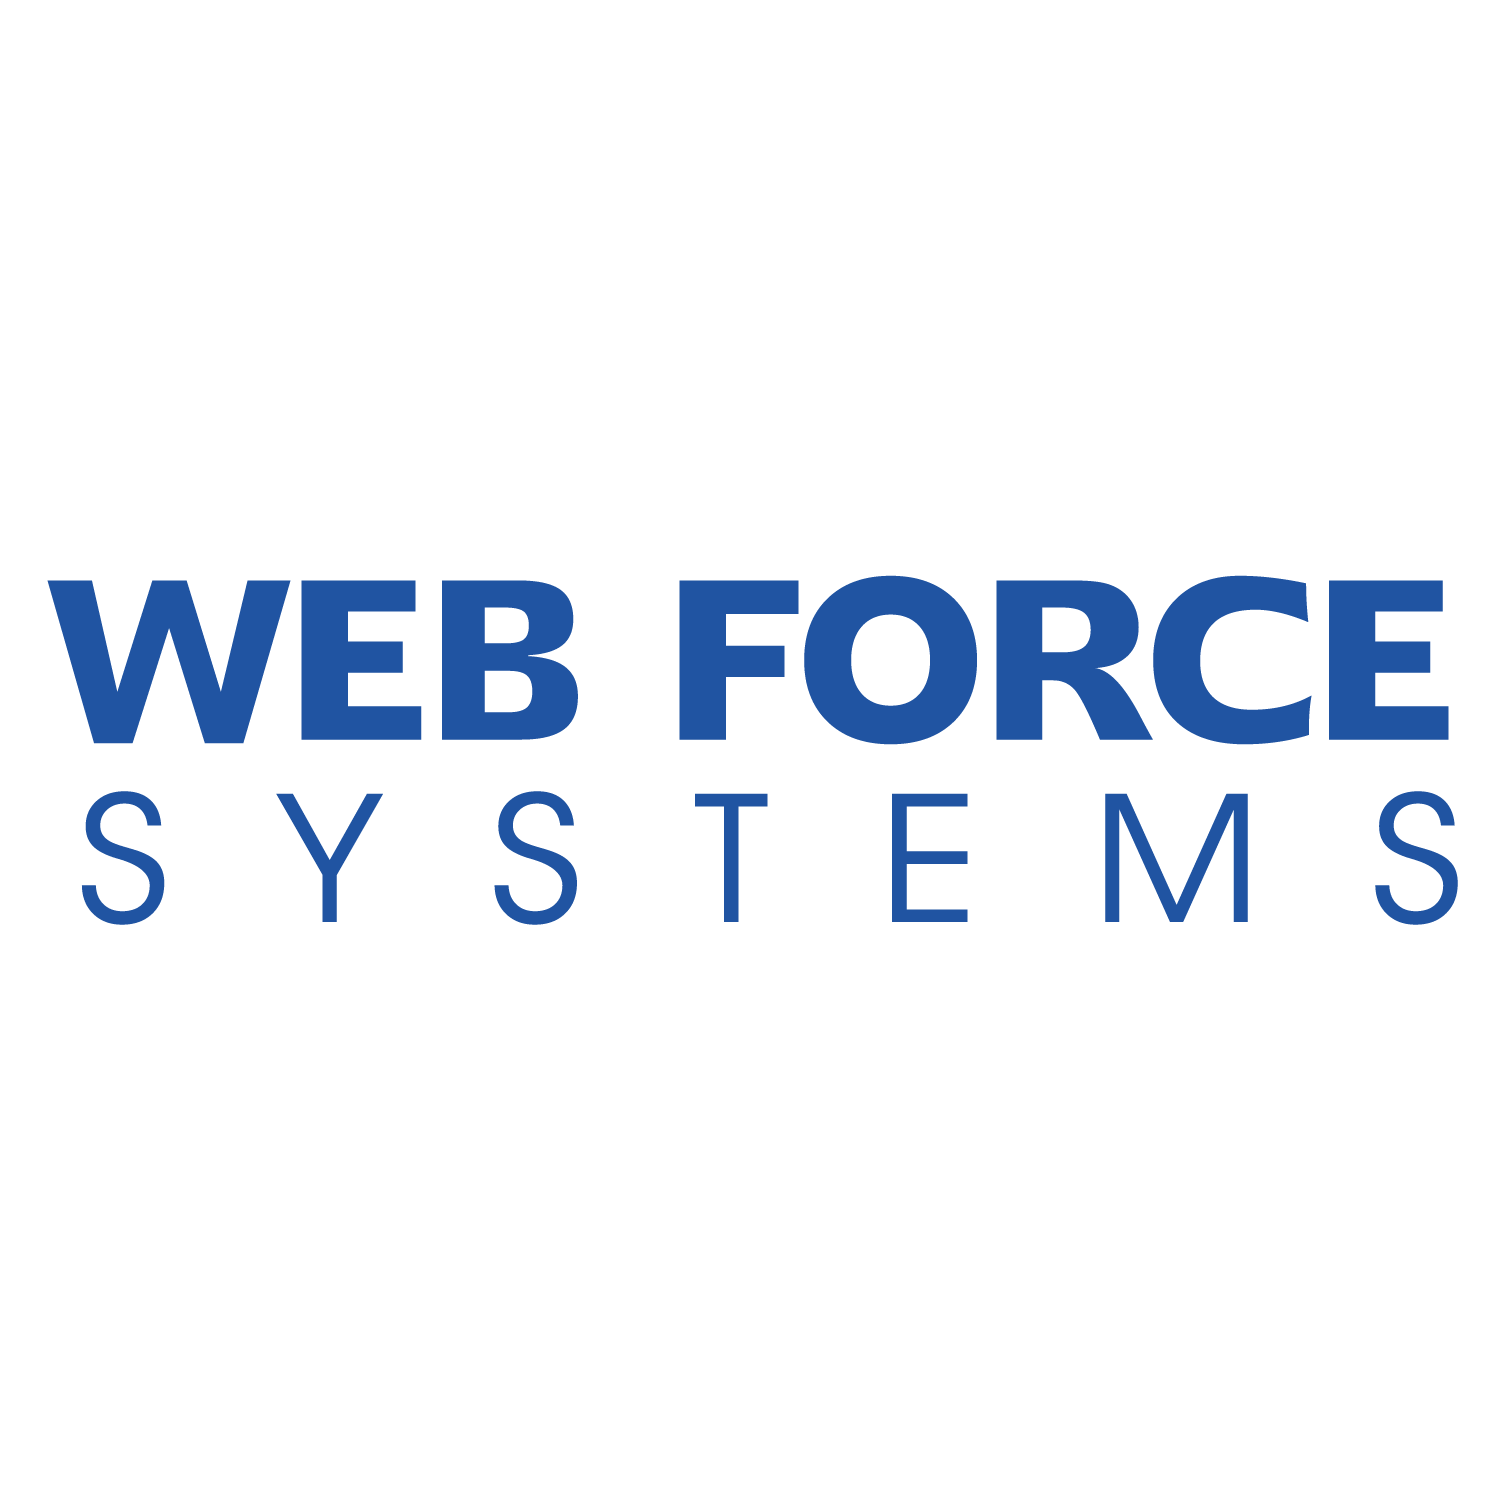 Web Force Systems